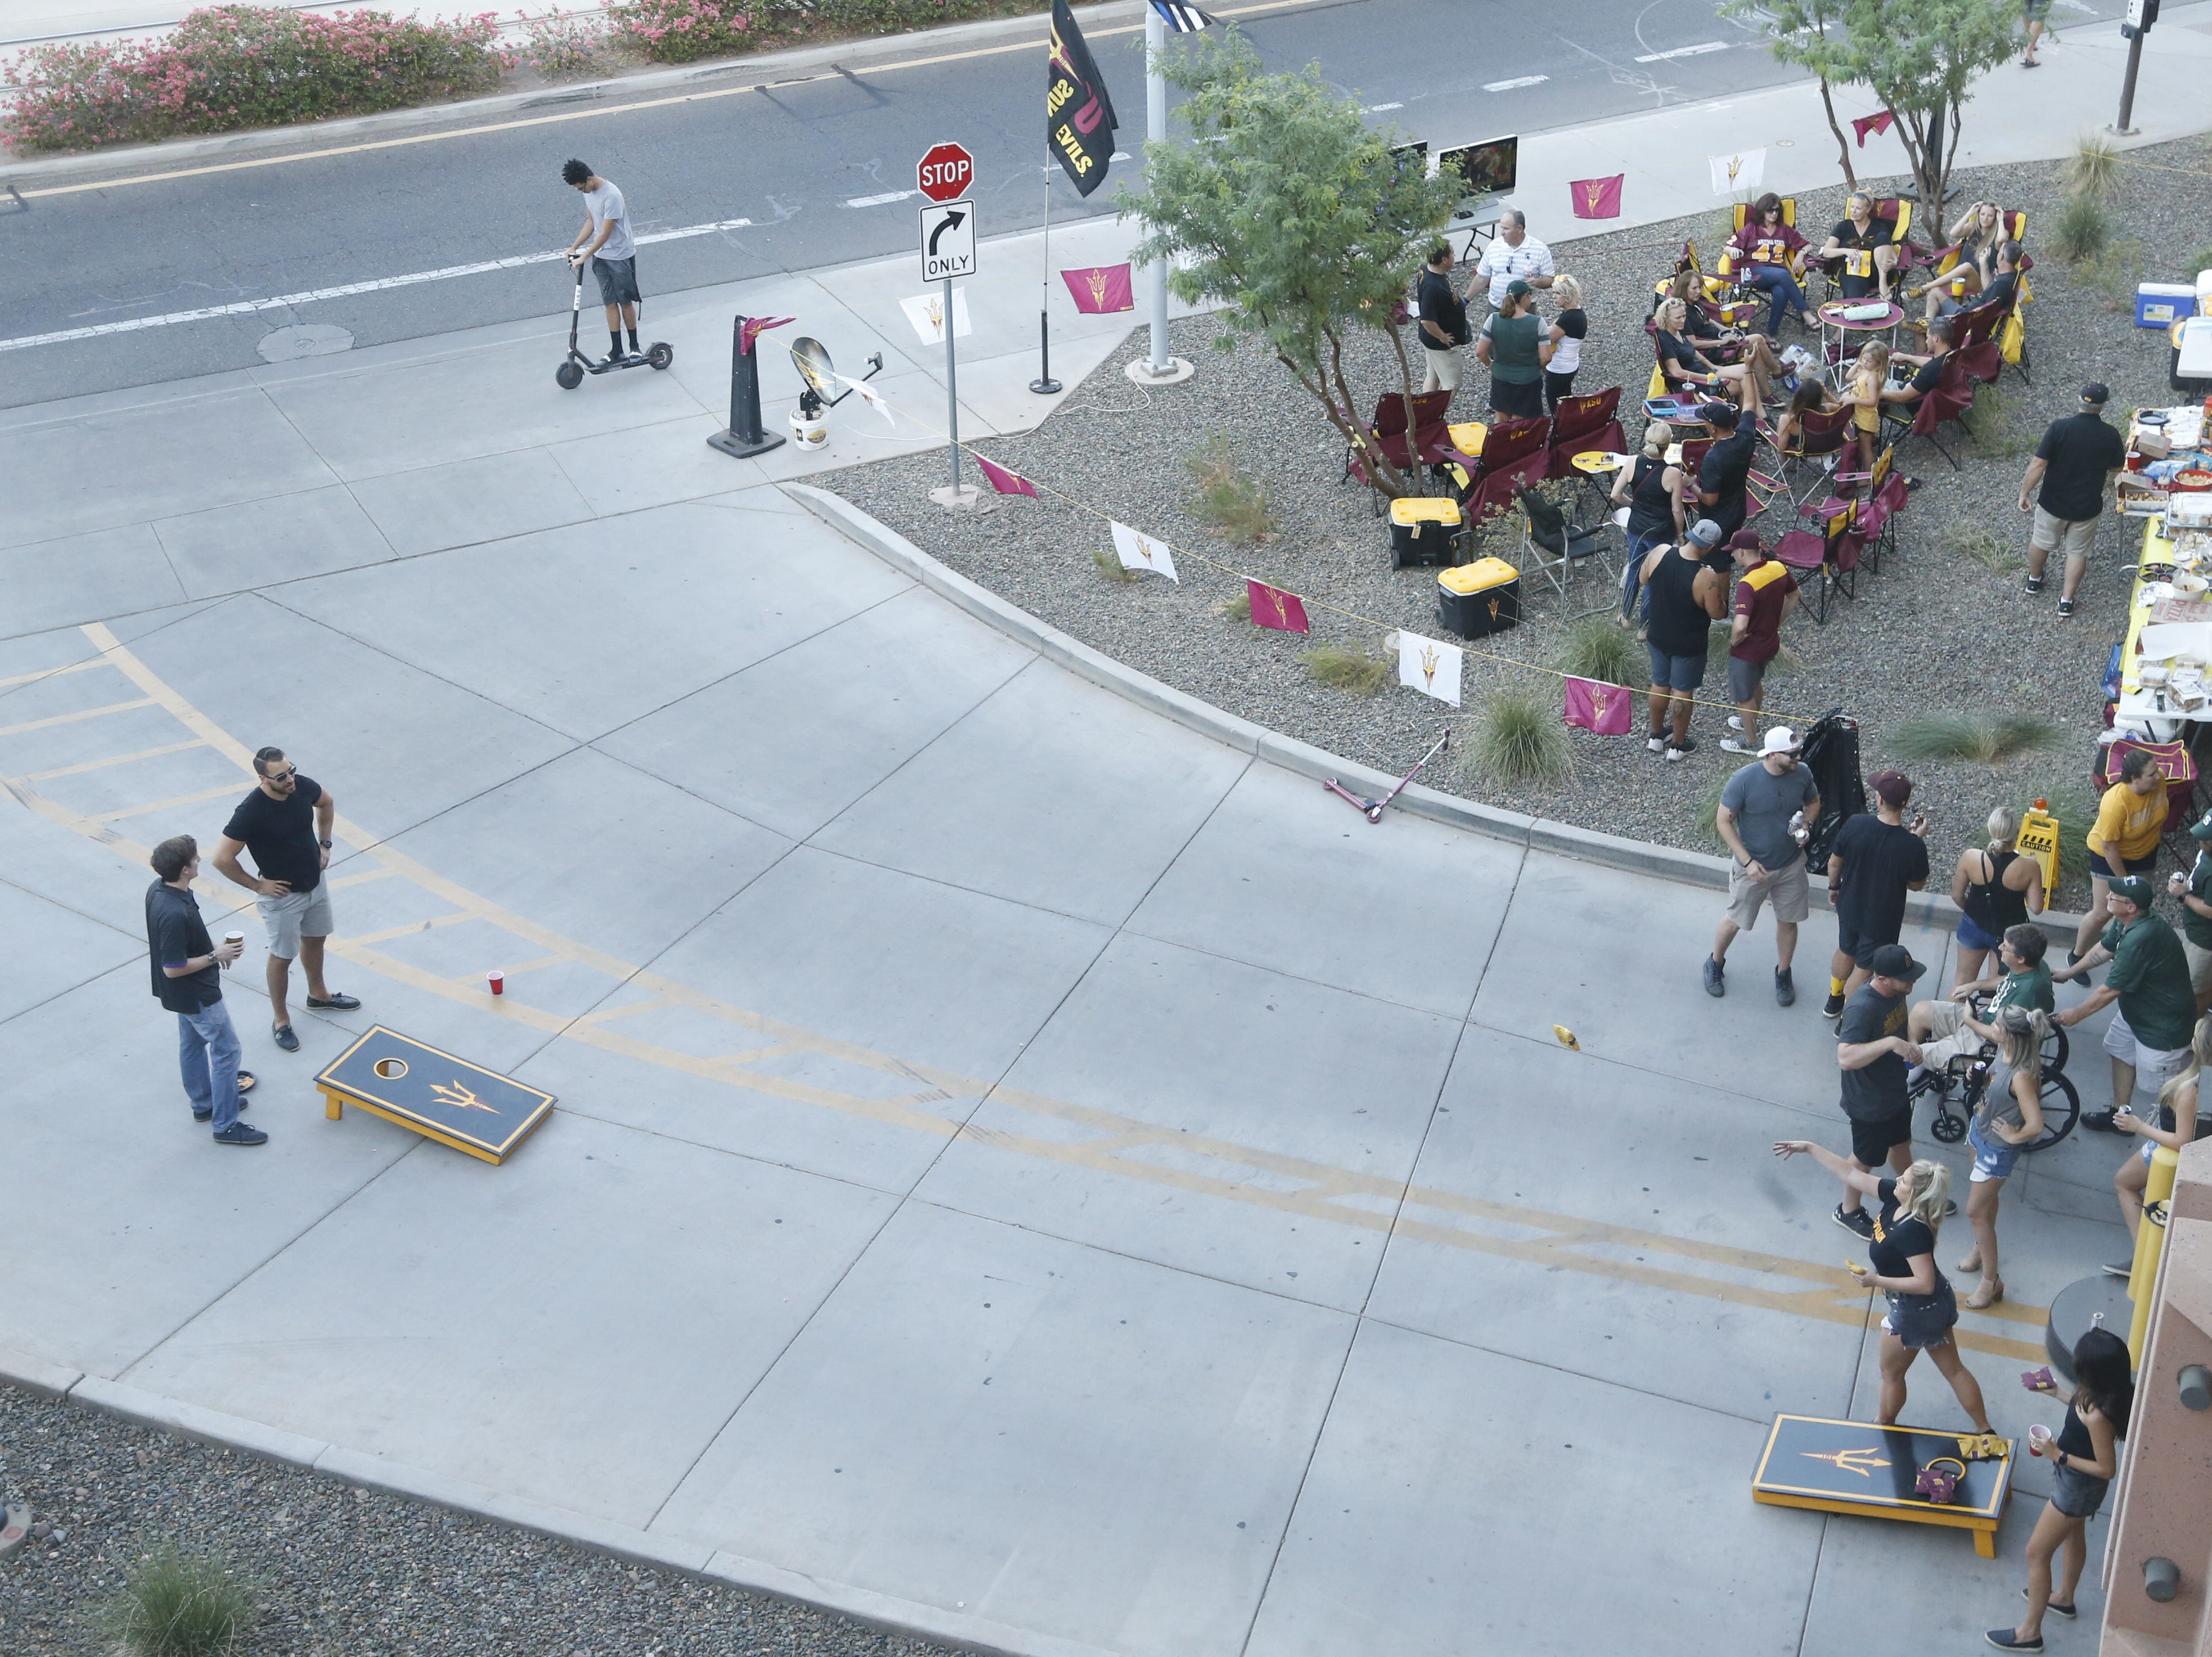 ASU fans stake their claims to empty exit lanes for games of corn hole before an ASU game against Michigan State at Sun Devil Stadium in Tempe, Ariz. on Sept. 8, 2018.